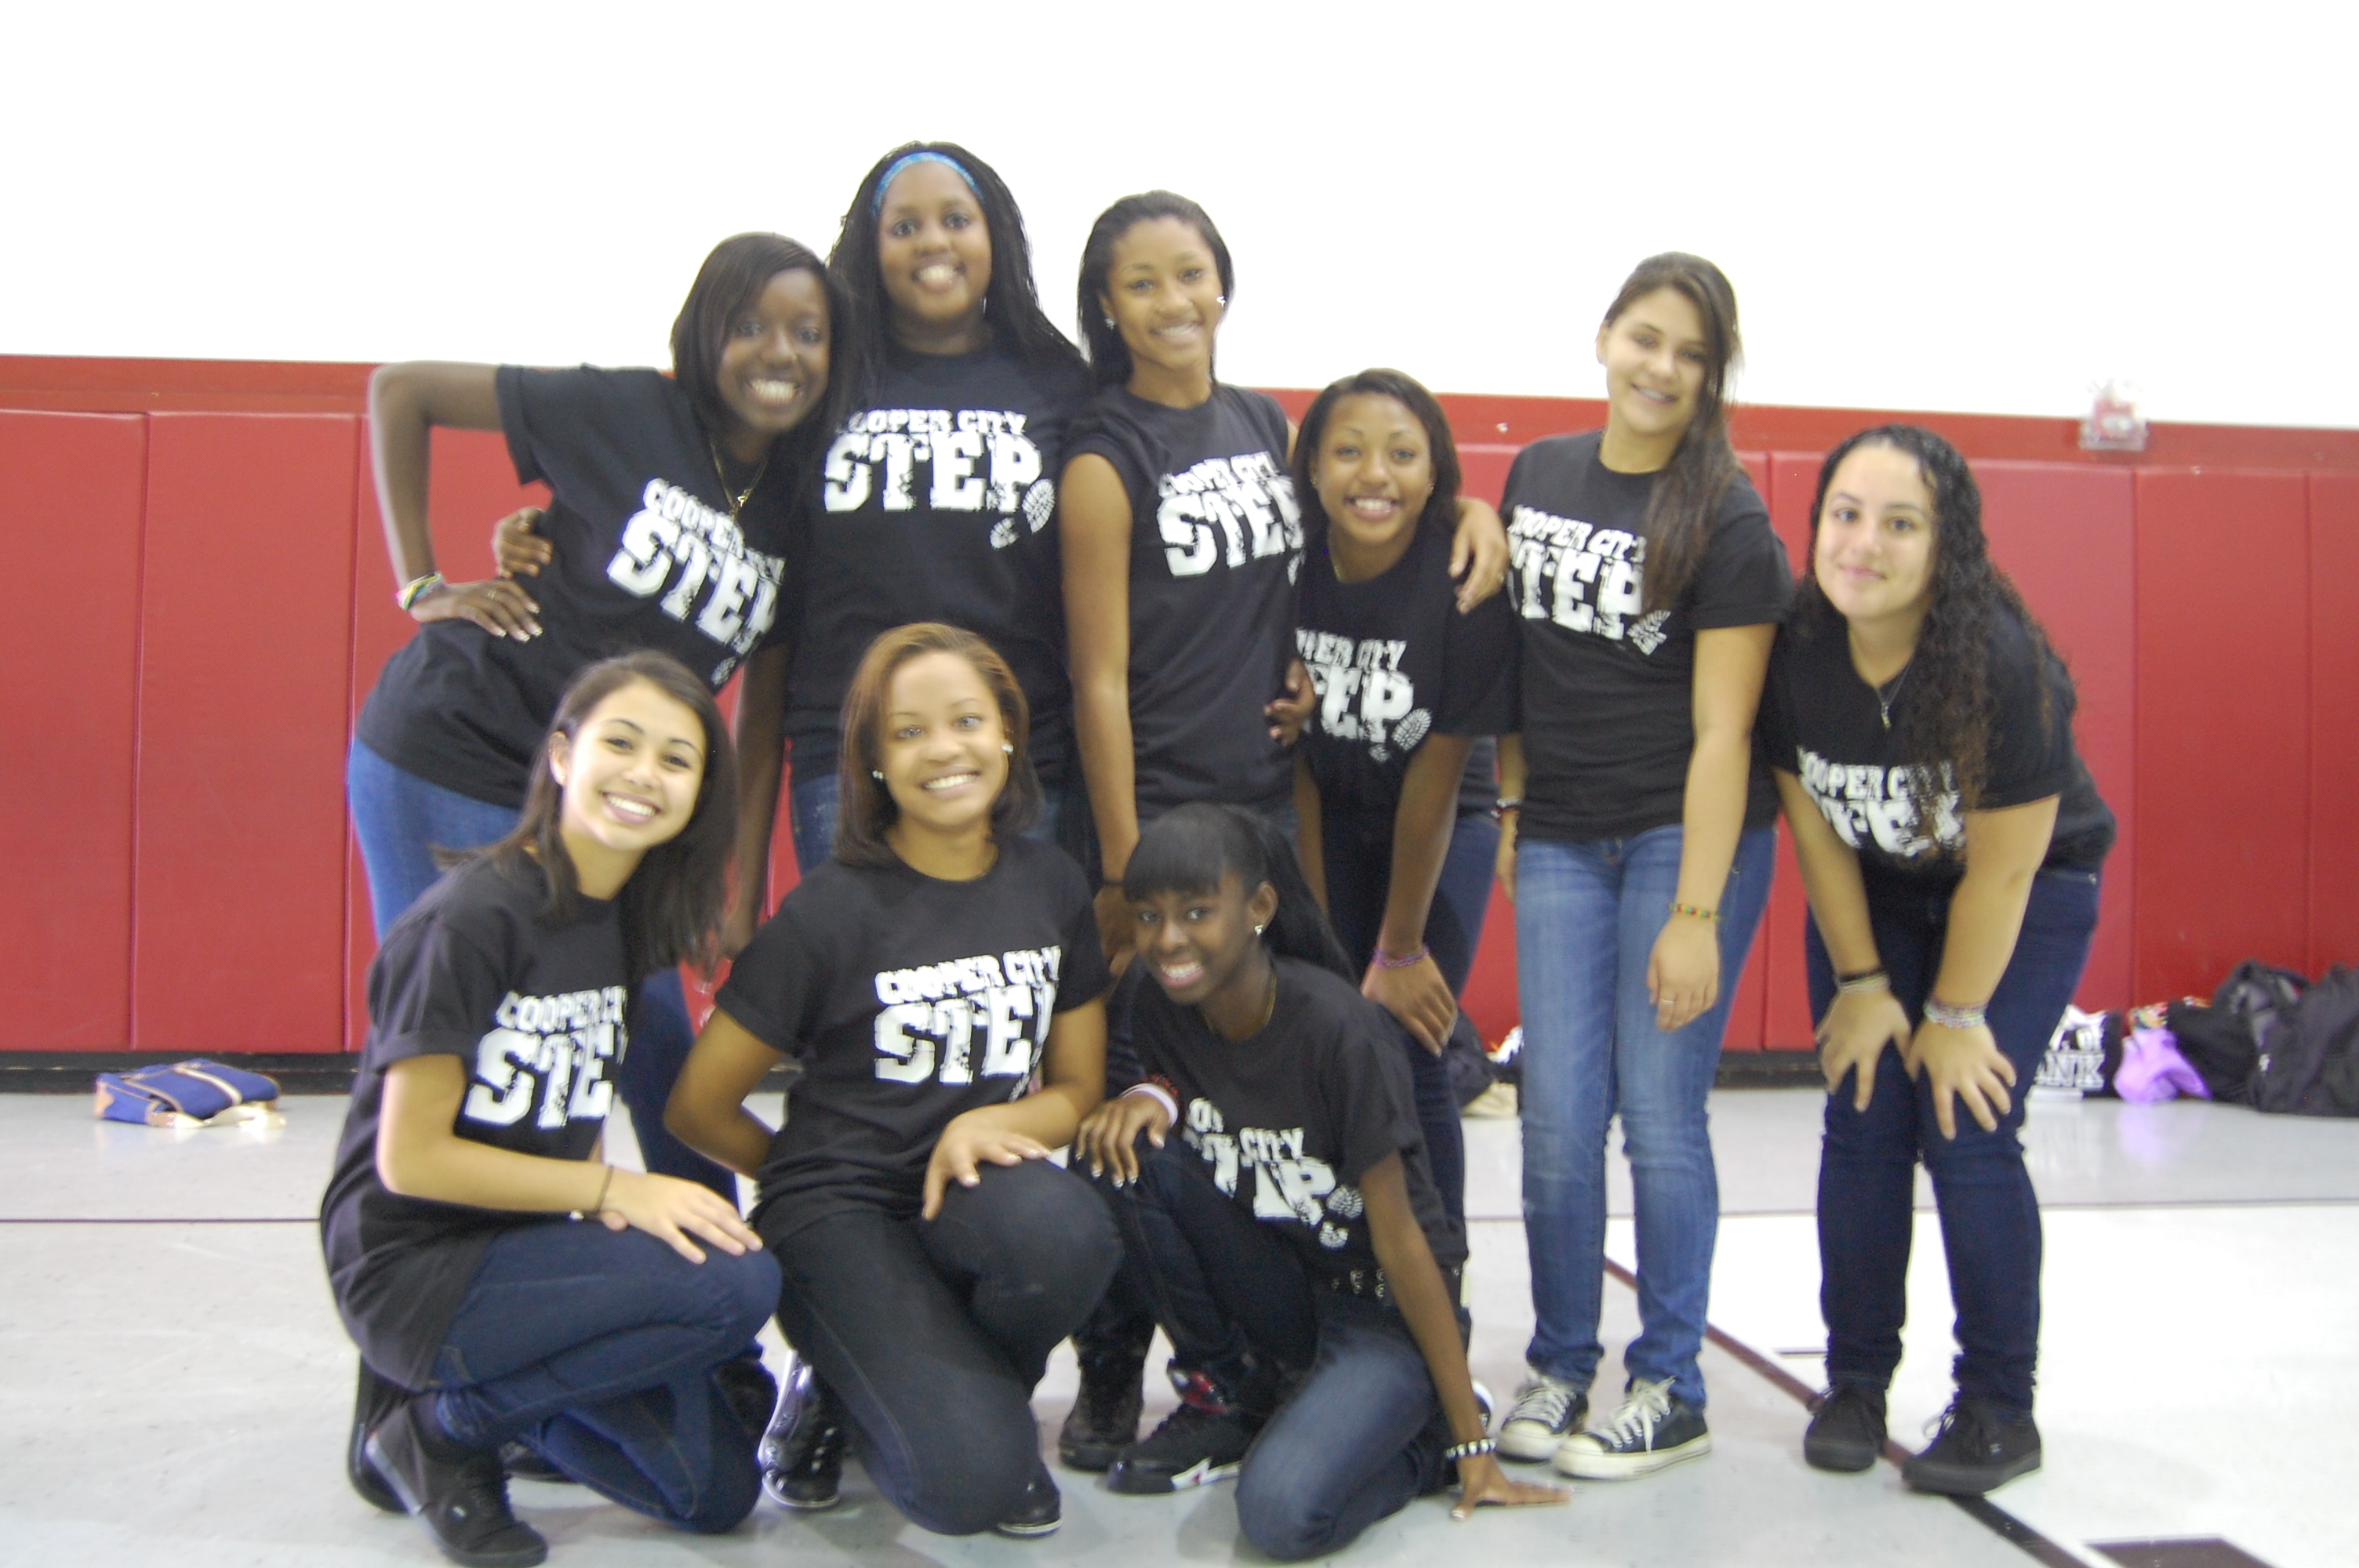 Step Team Uniforms http://thelariatonline.com/?p=651